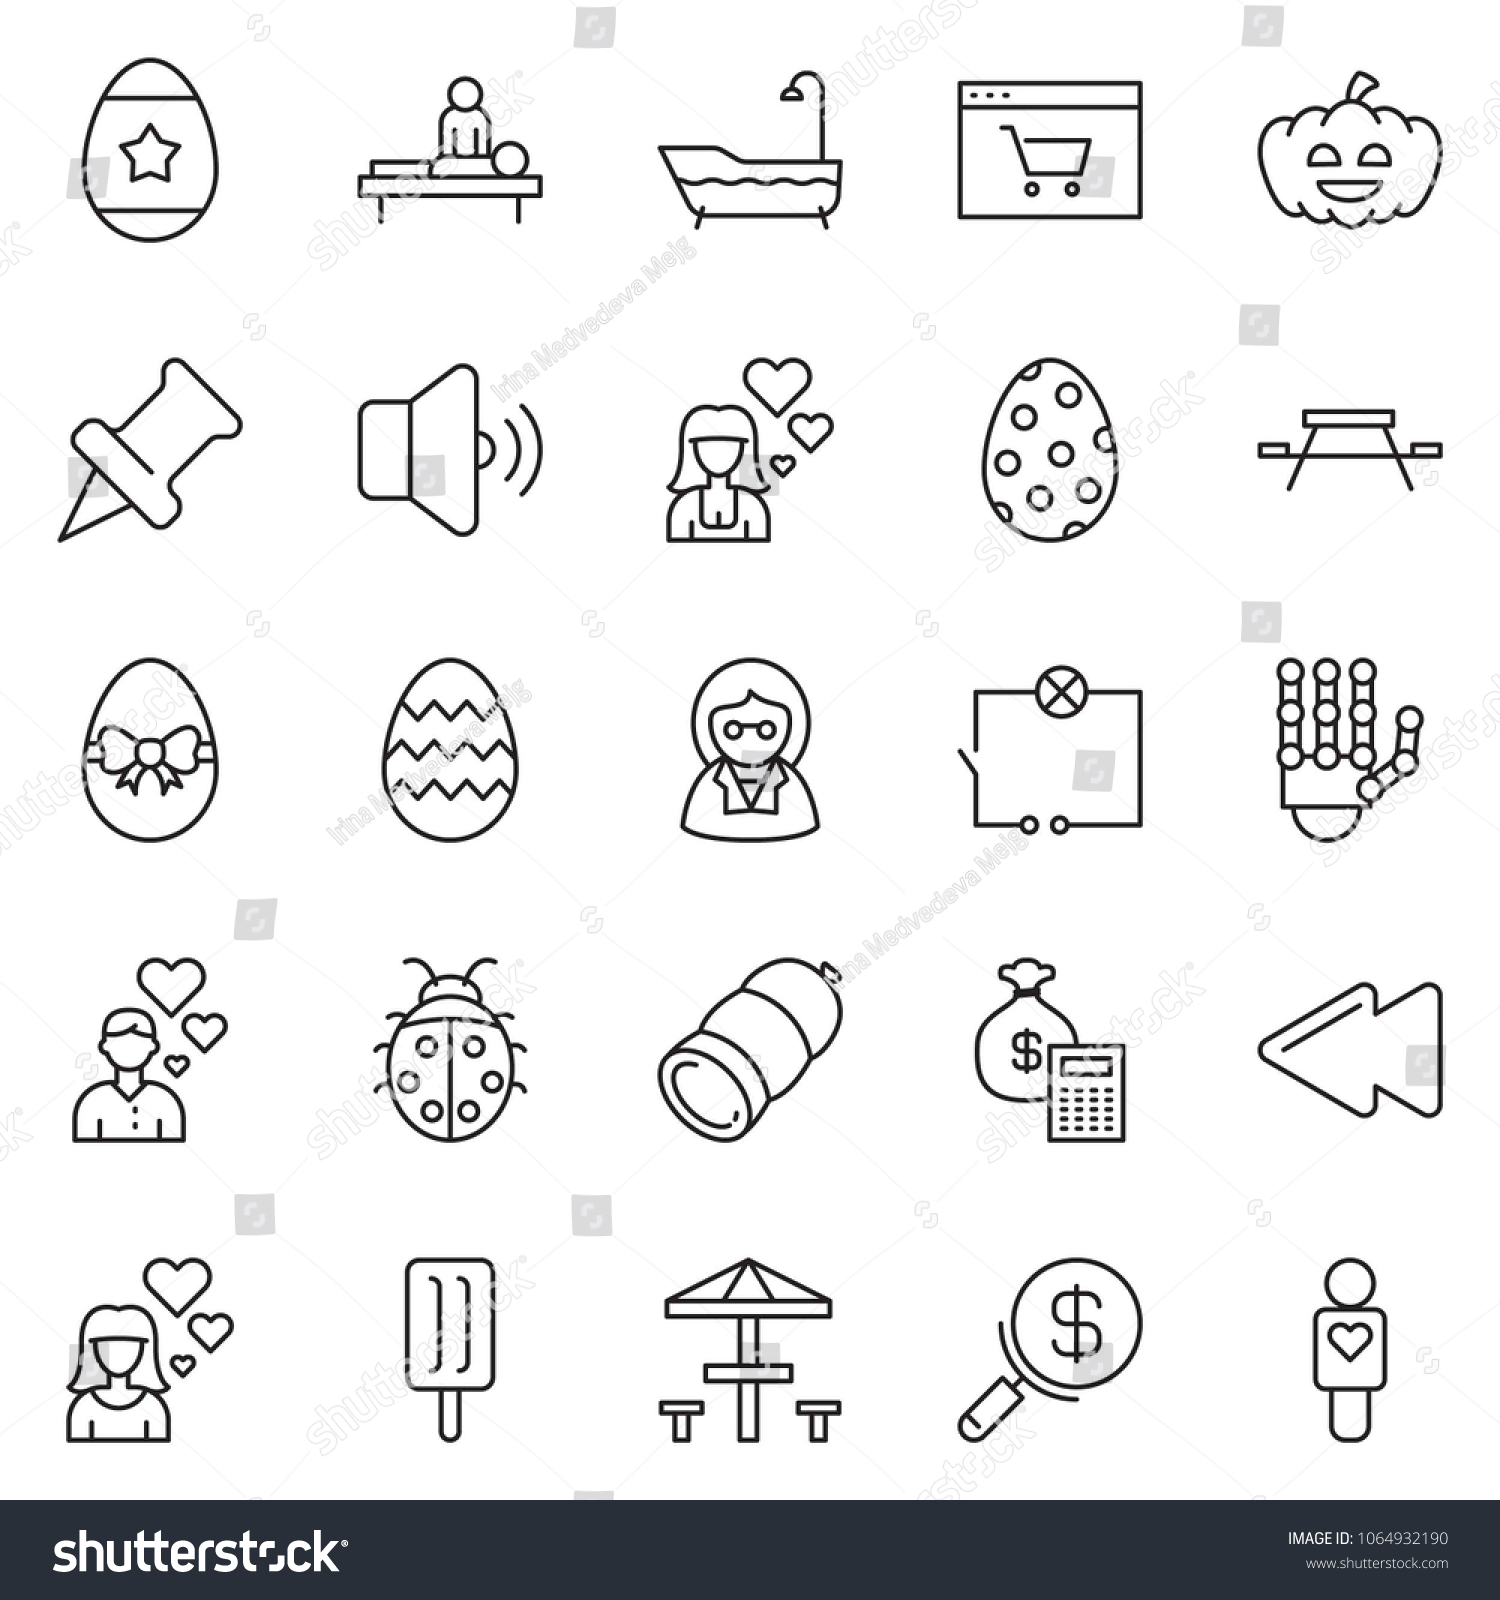 Thin Line Icon Set Money Bag Stock Vector Royalty Free 1064932190 Wiring How To Calculator Search Web Shop